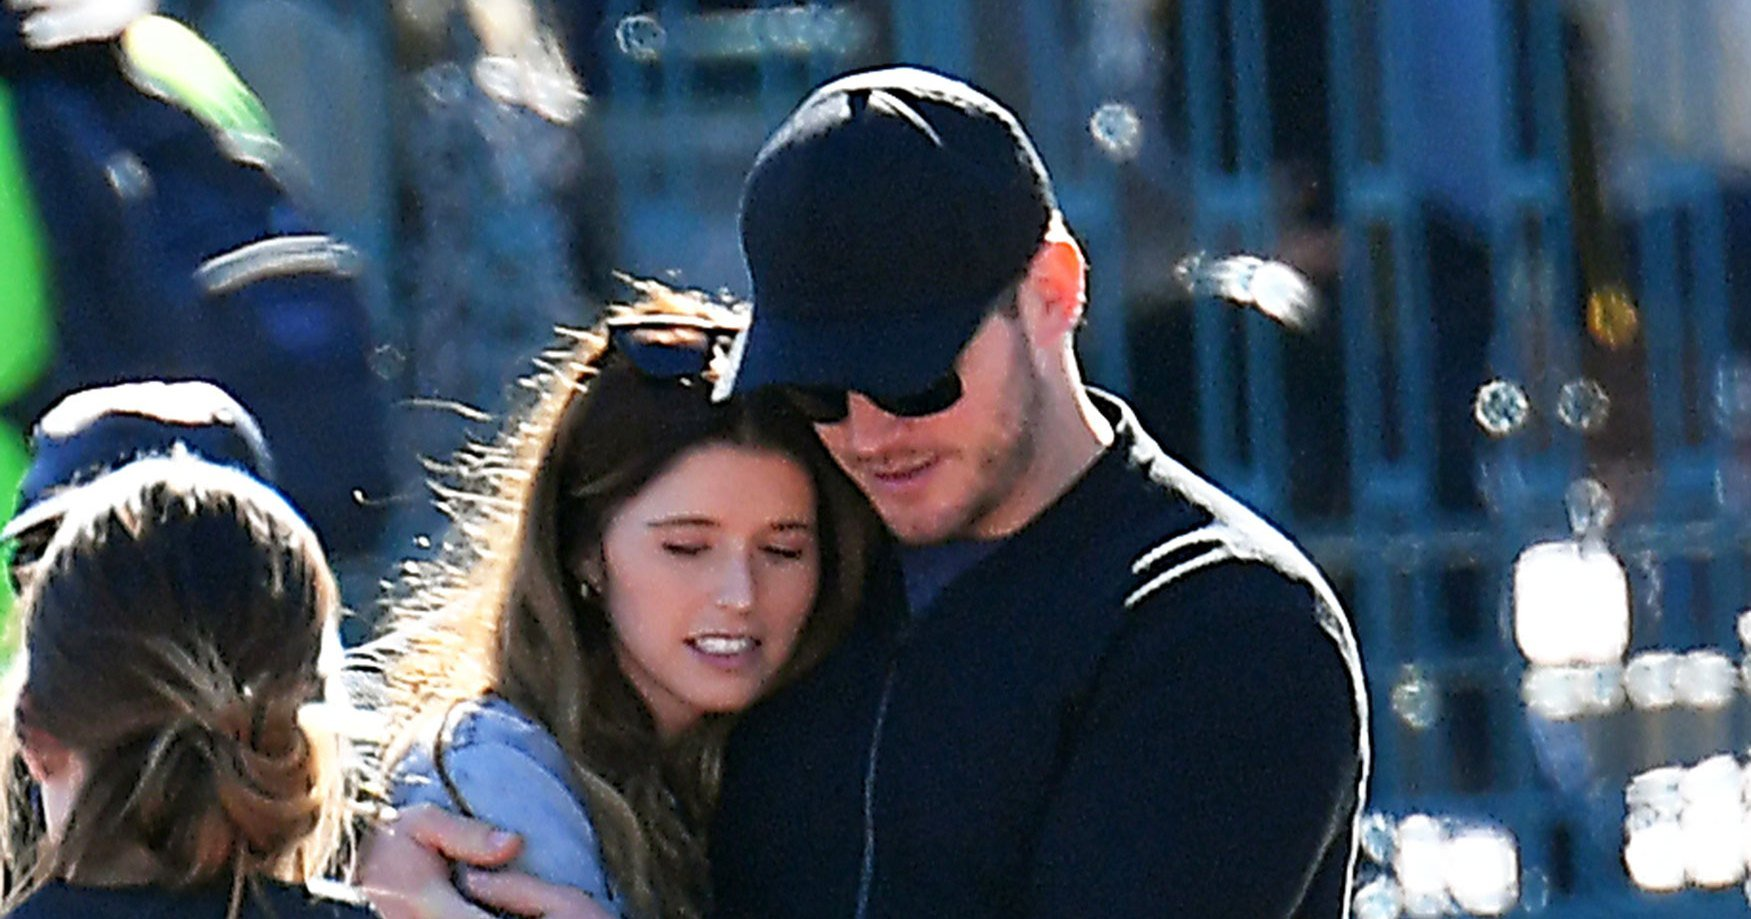 Chris Pratt and Katherine Schwarzenegger Hold Hands, Cuddle at Disneyland: Pics